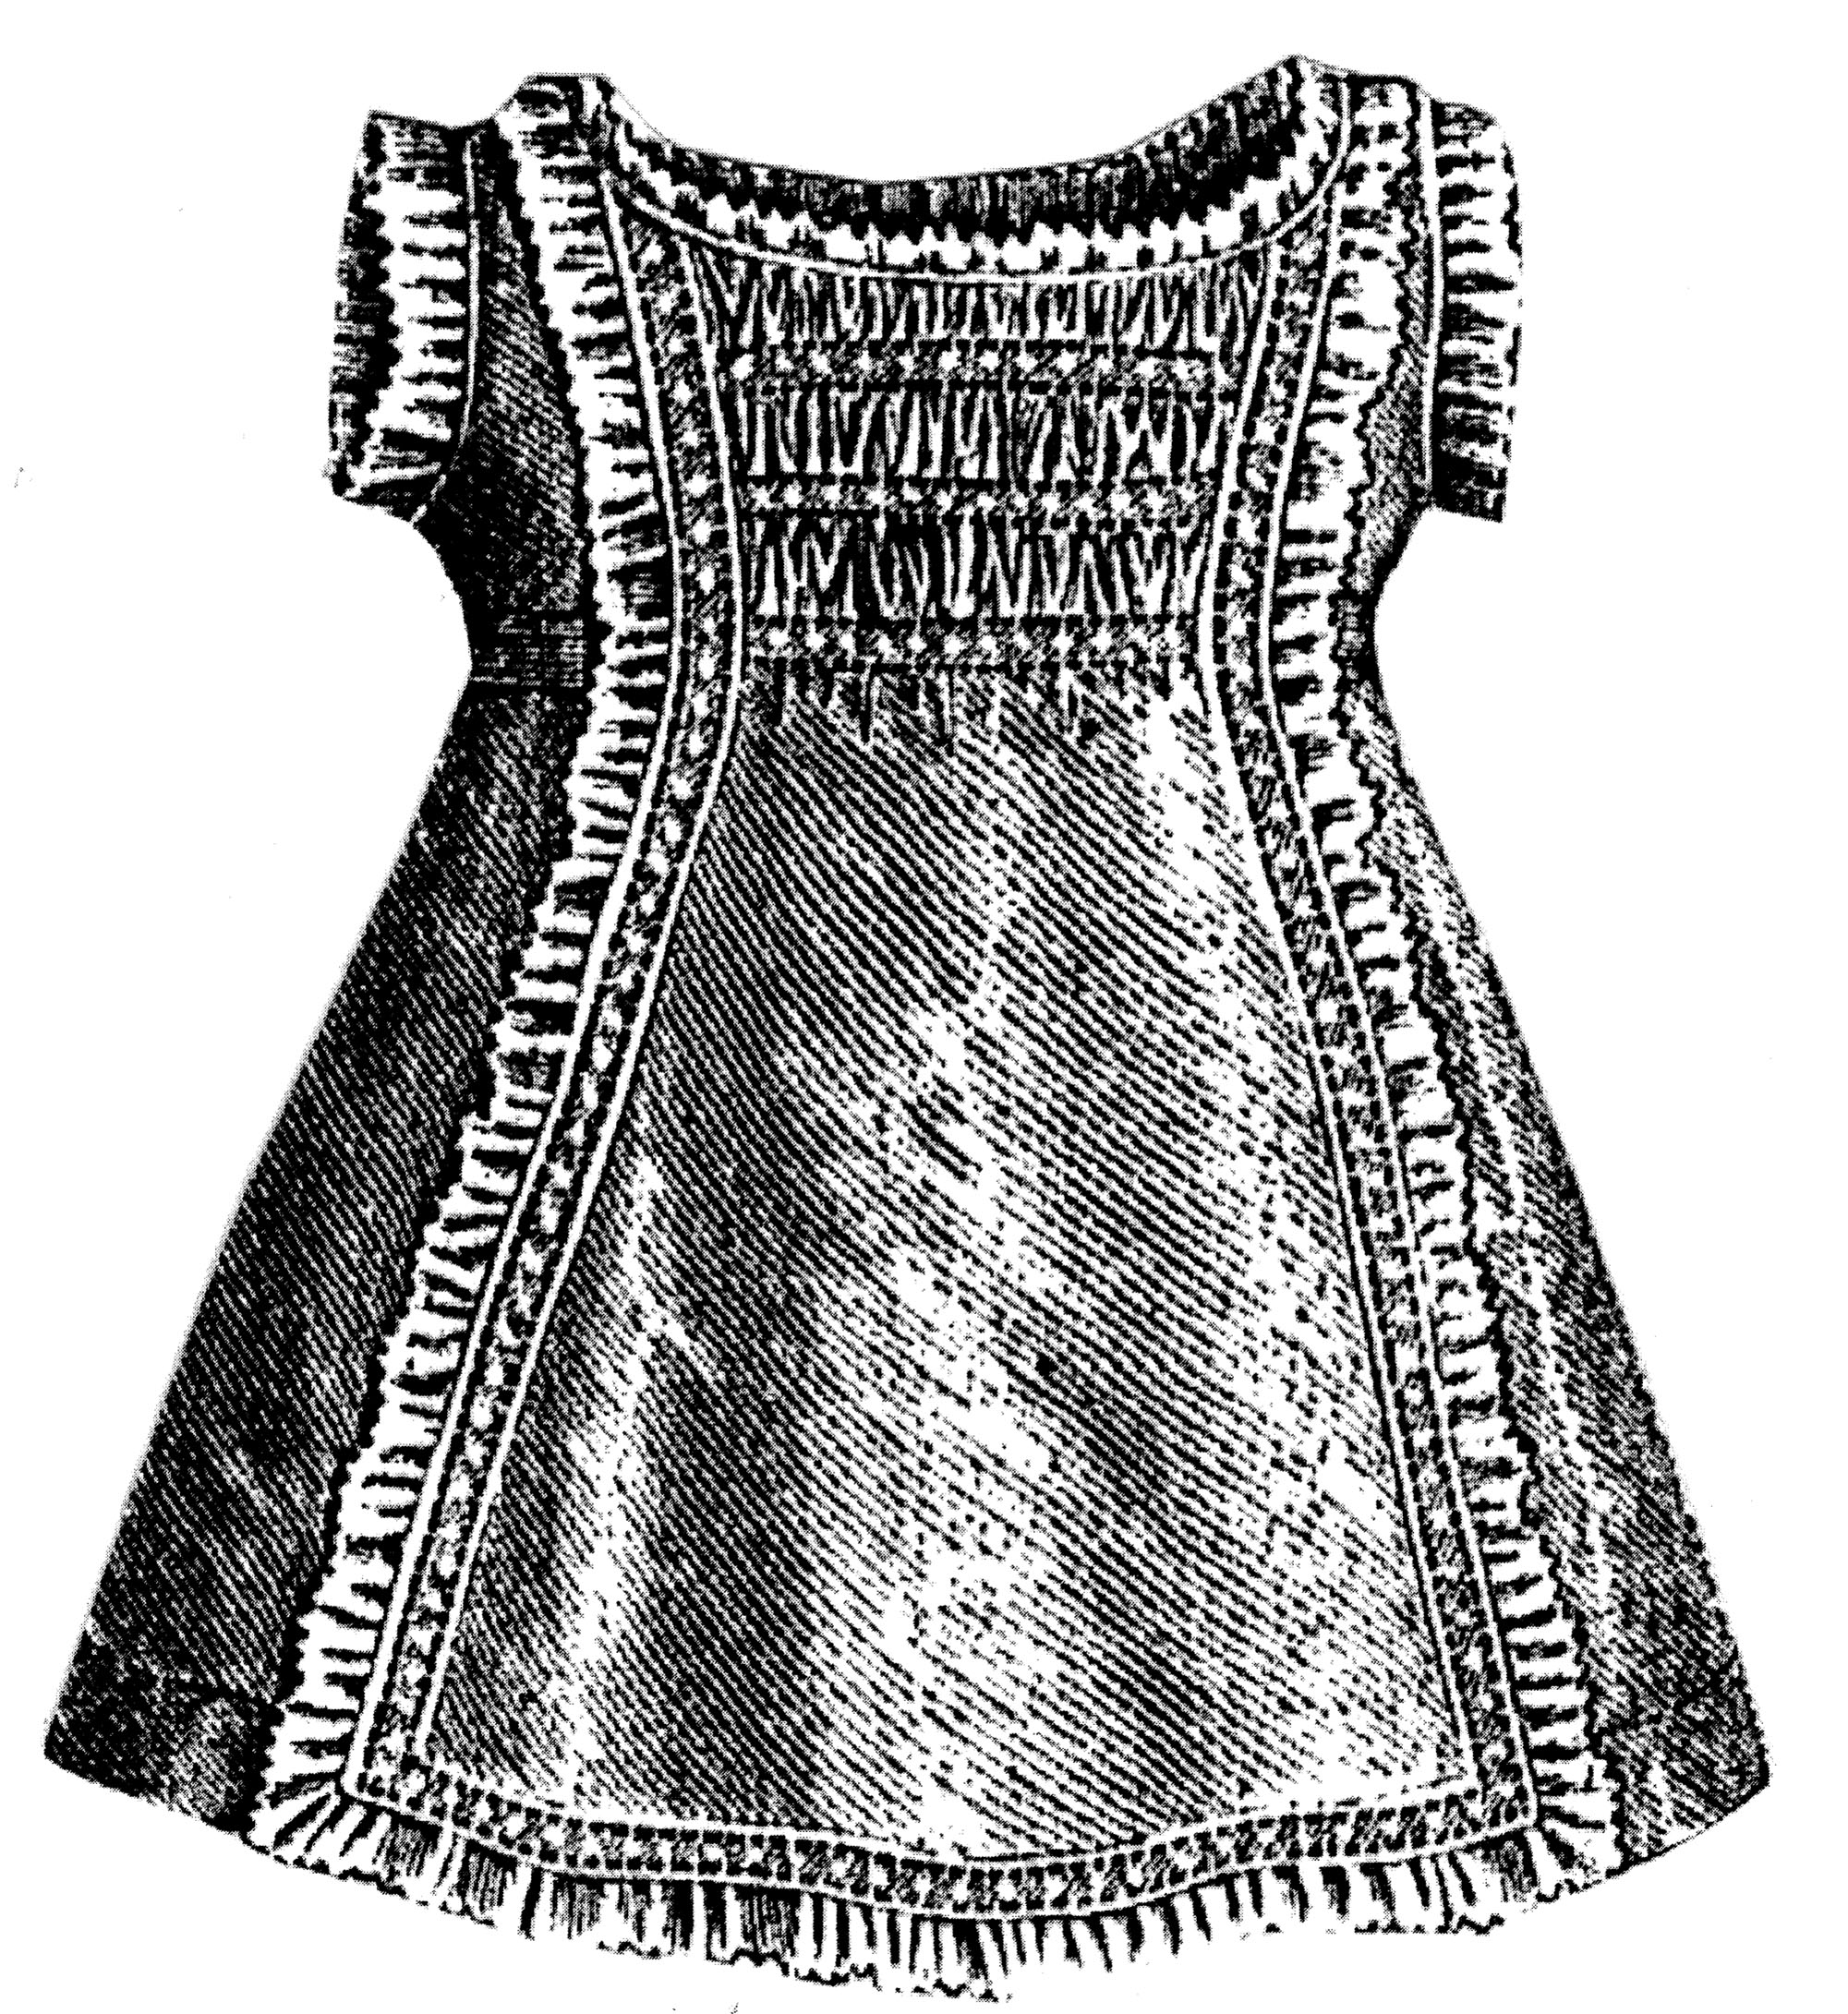 Sewing Pattern: 1875 Slip for Girl 2-4 Years Pattern